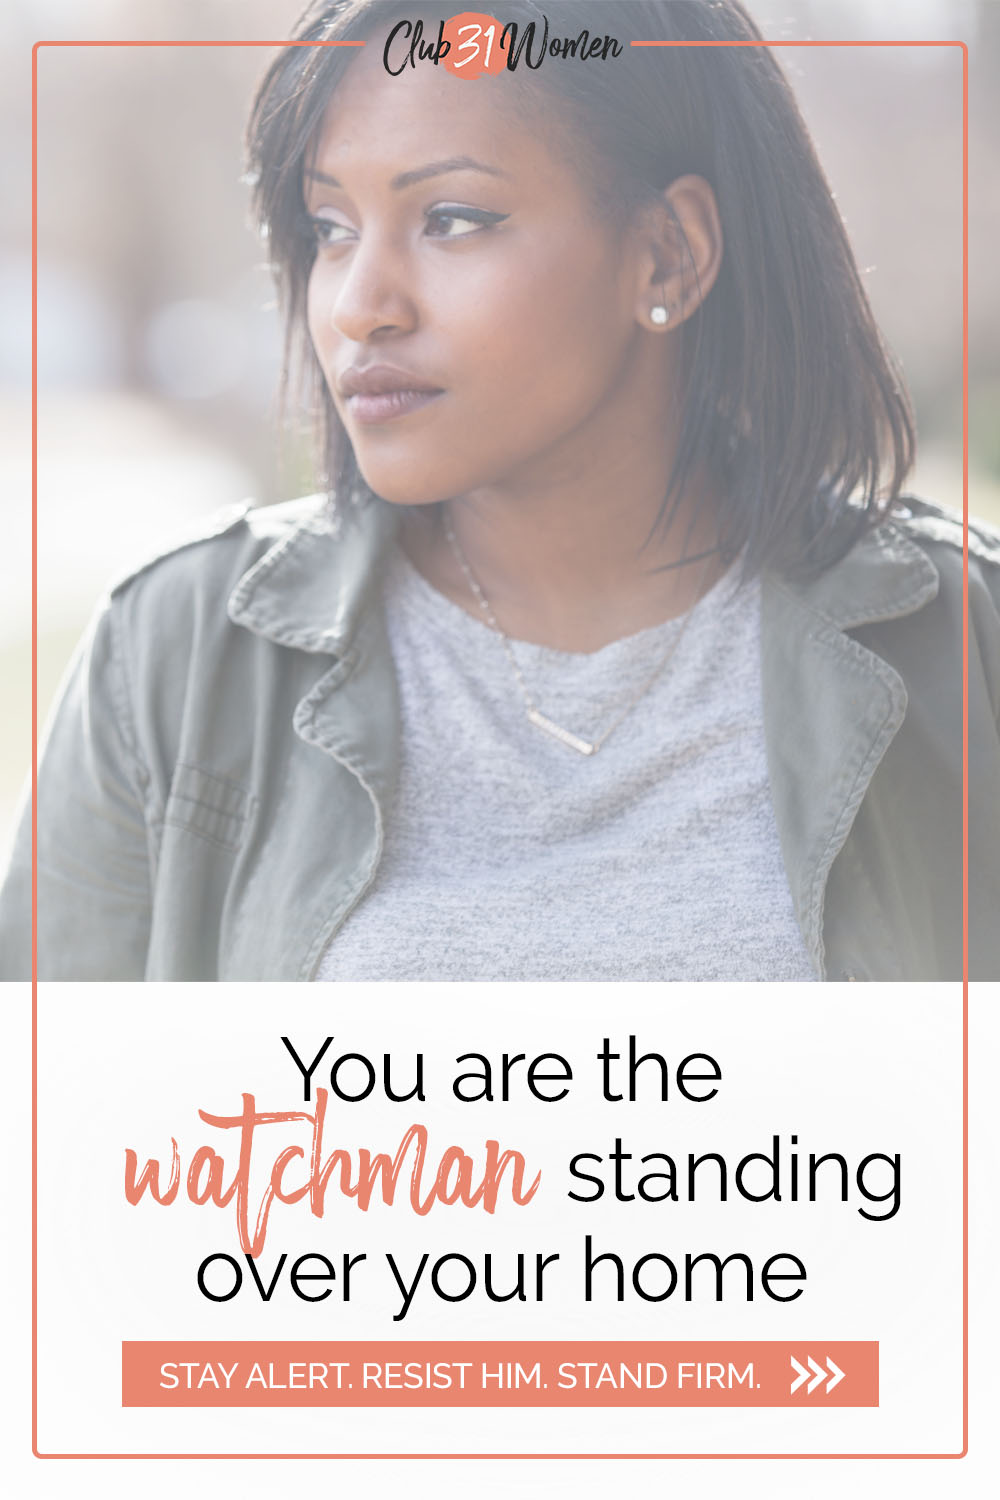 As moms who shoulder a lot of the decisions in our homes, thank God that we have a heavenly watchman and nothing escapes His gaze. via @Club31Women